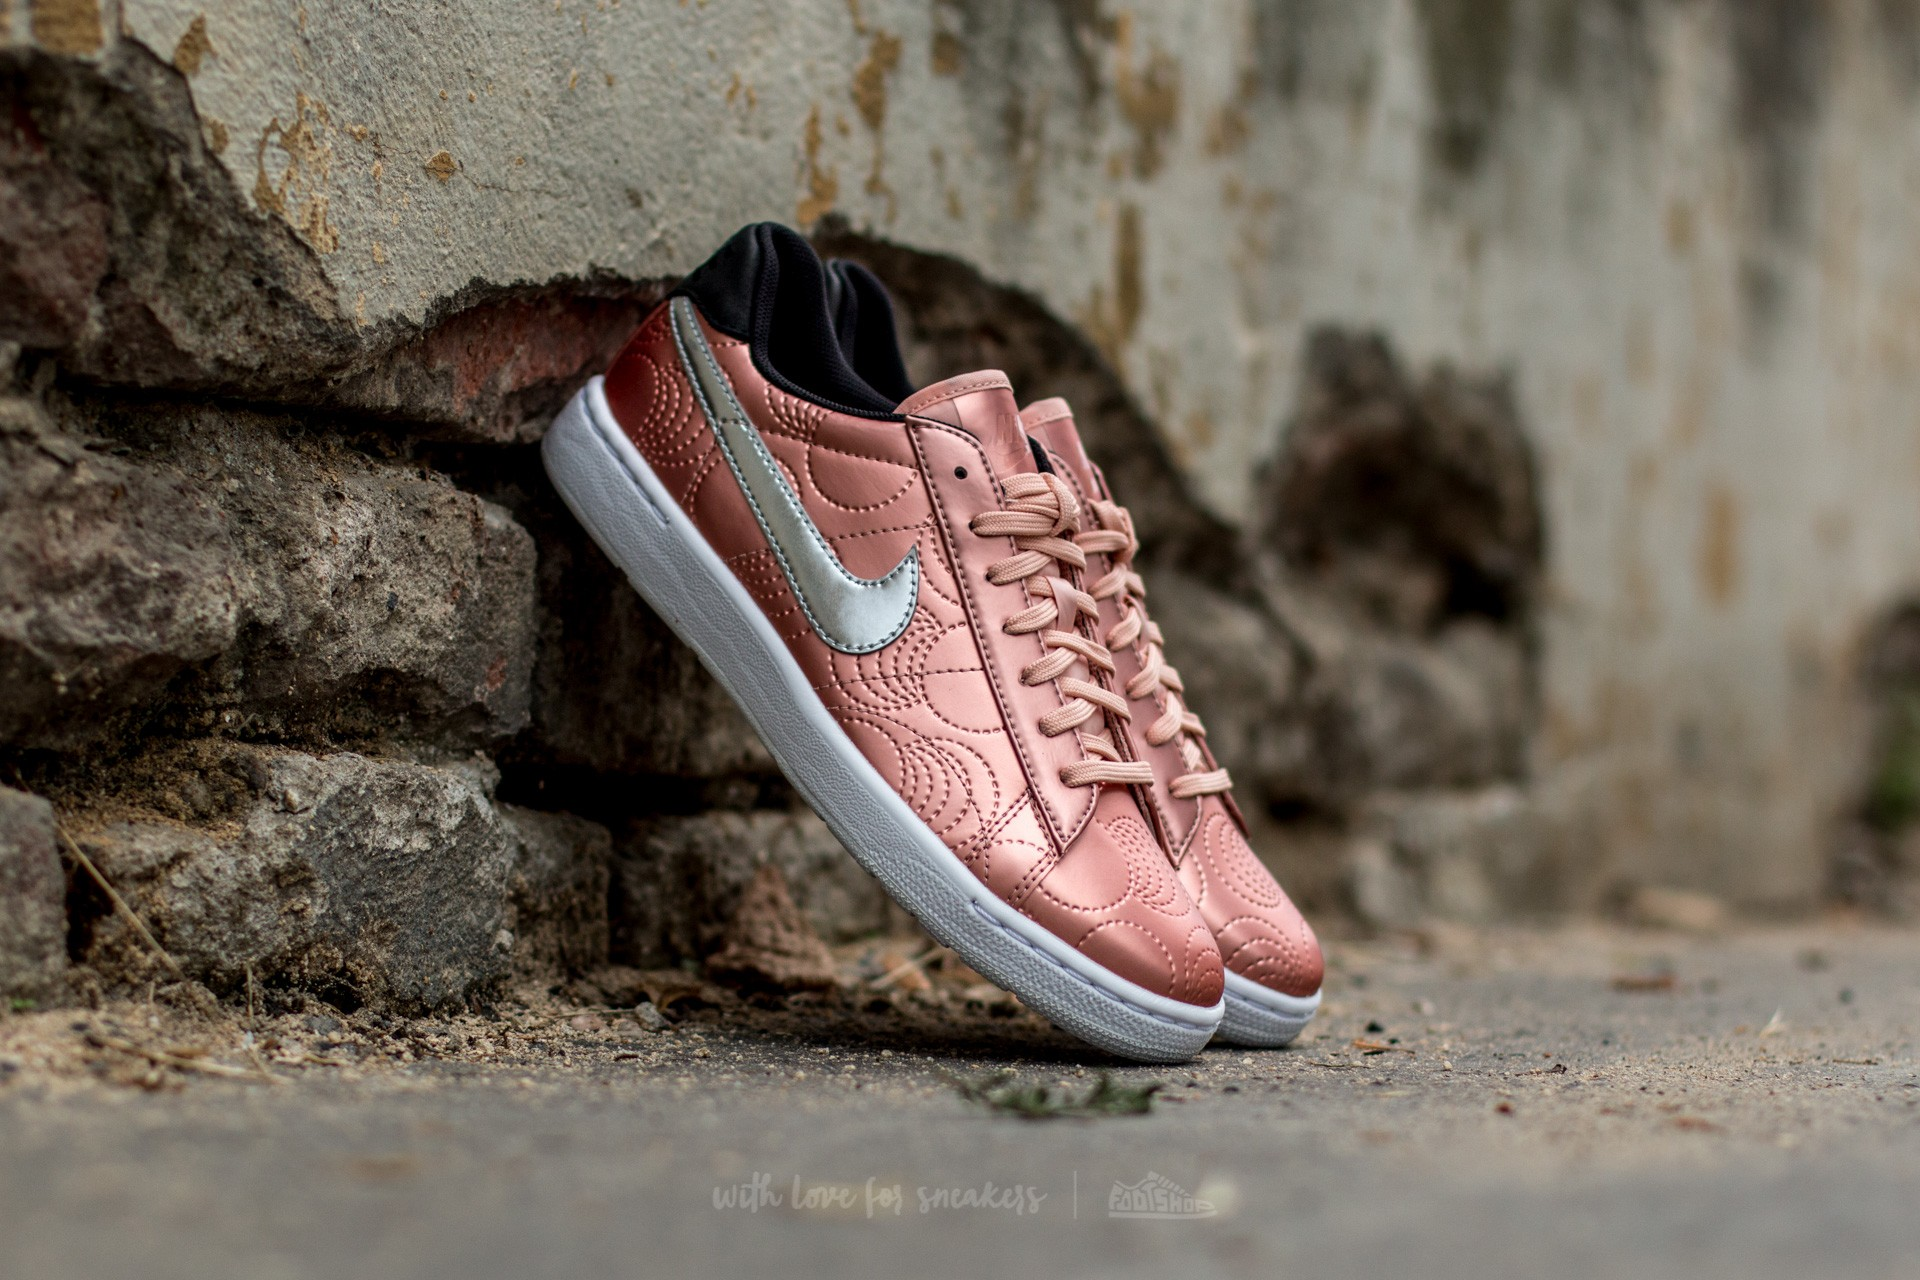 41180b51f3a Nike Tennis Classic Ultra LOTC QS Metallic Rose Gold  Metallic  Silver-Arctic Or